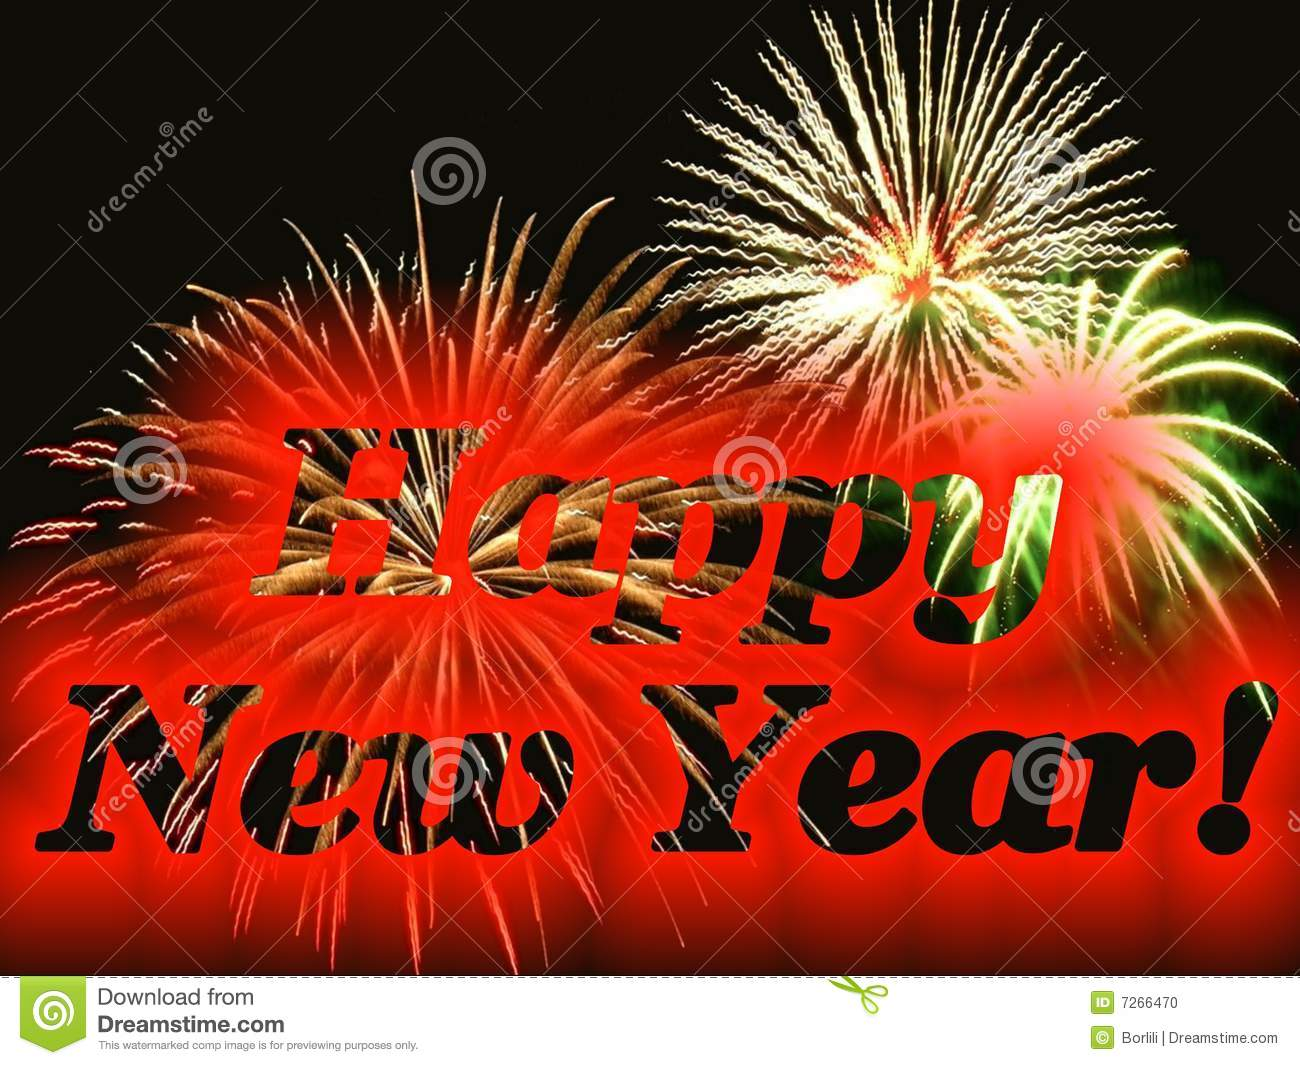 happy new year gift image happy new year gift card with fireworks stock photo